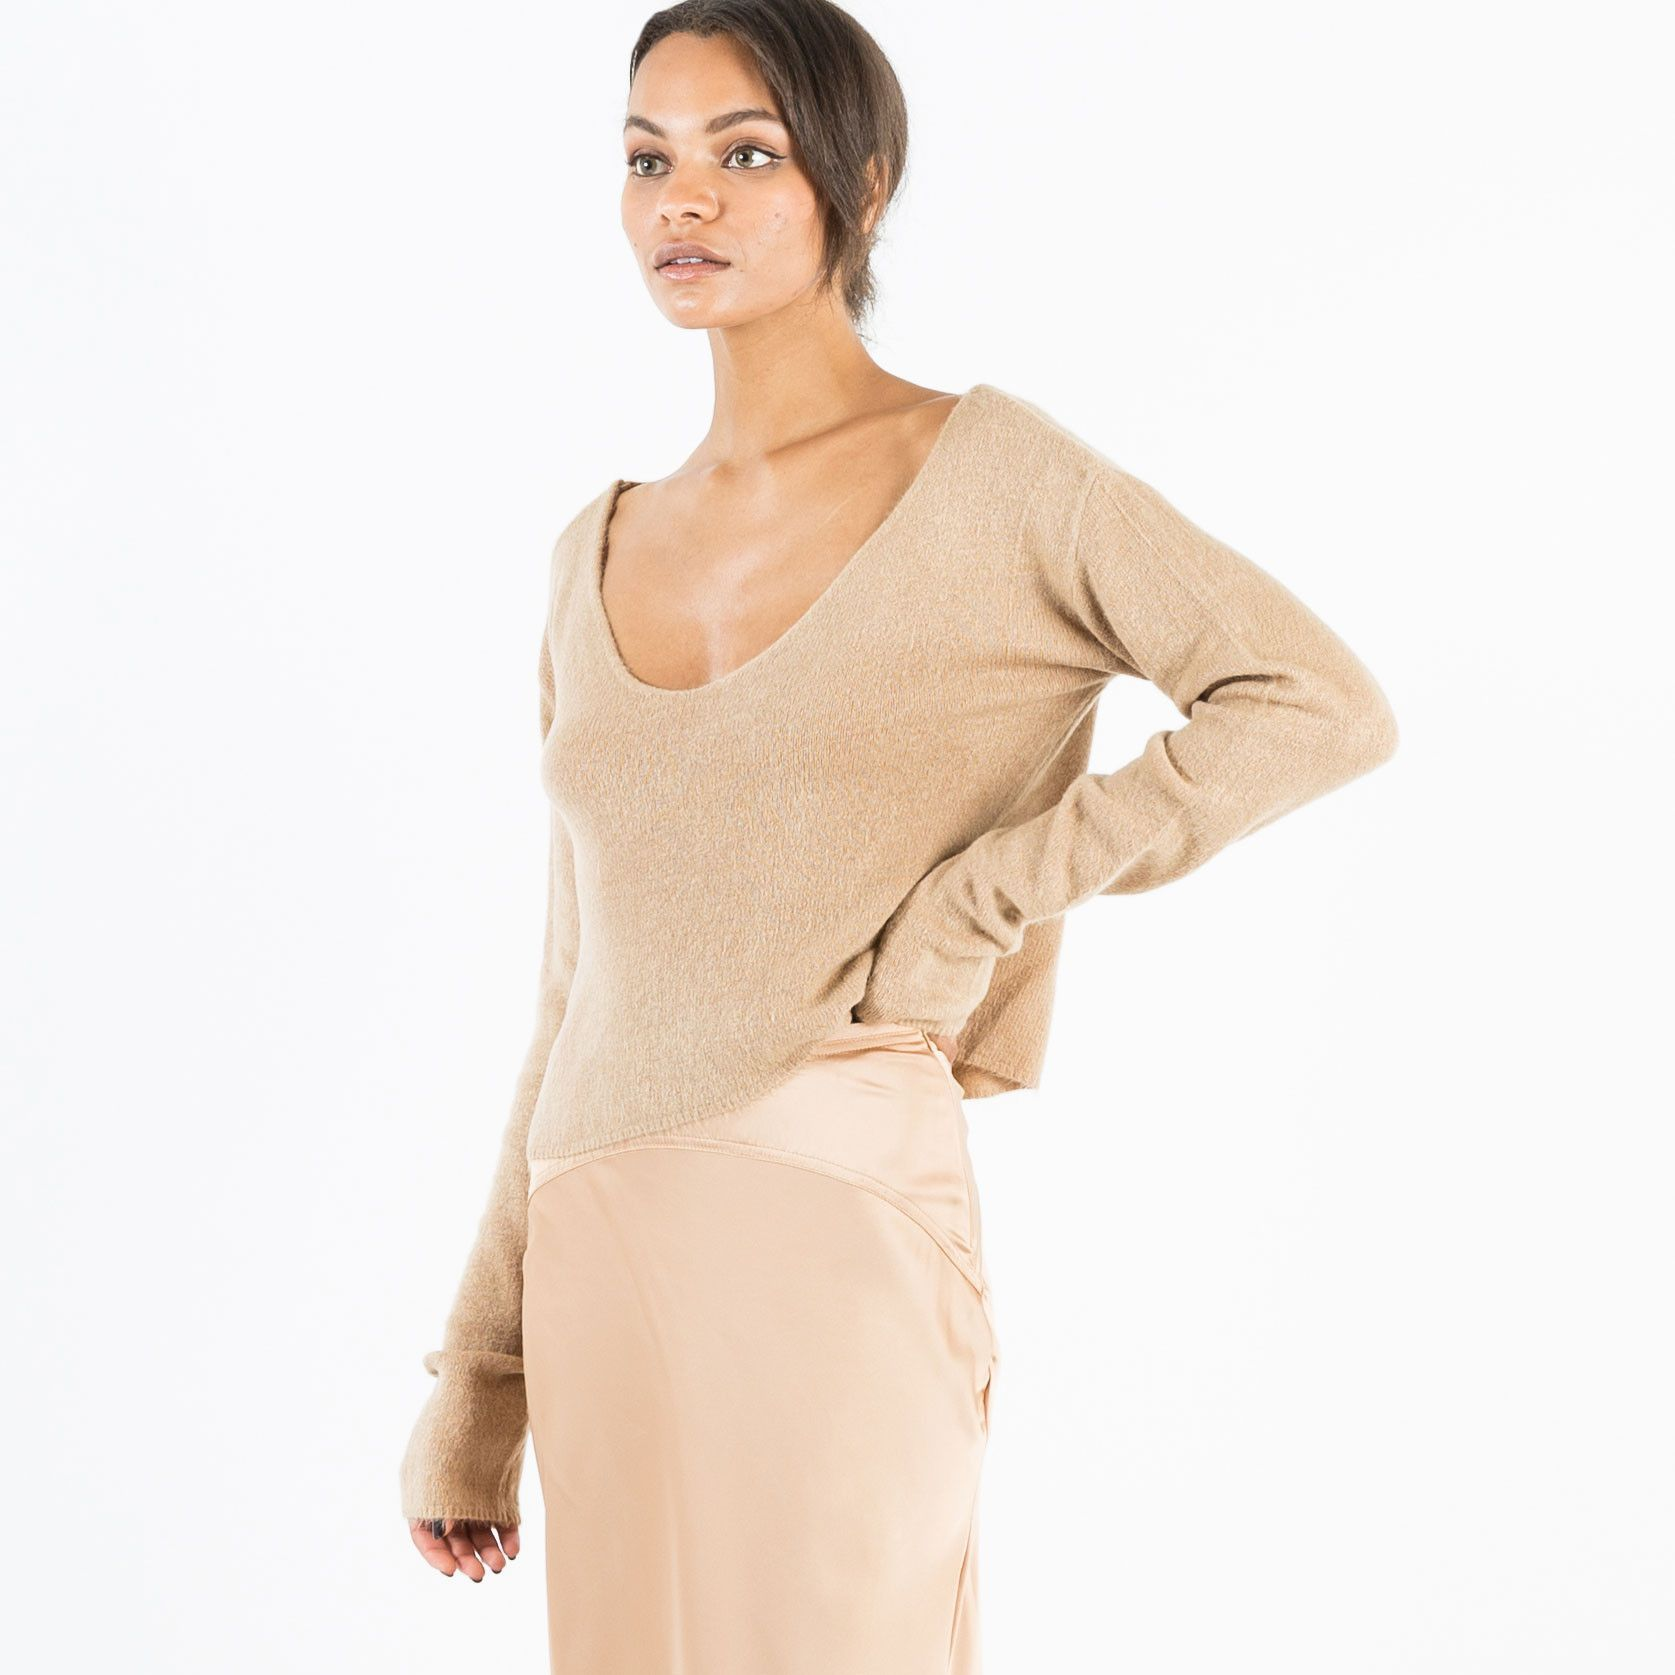 Nova V-Neck Cropped Sweater (Camel) | Products | Pinterest ...